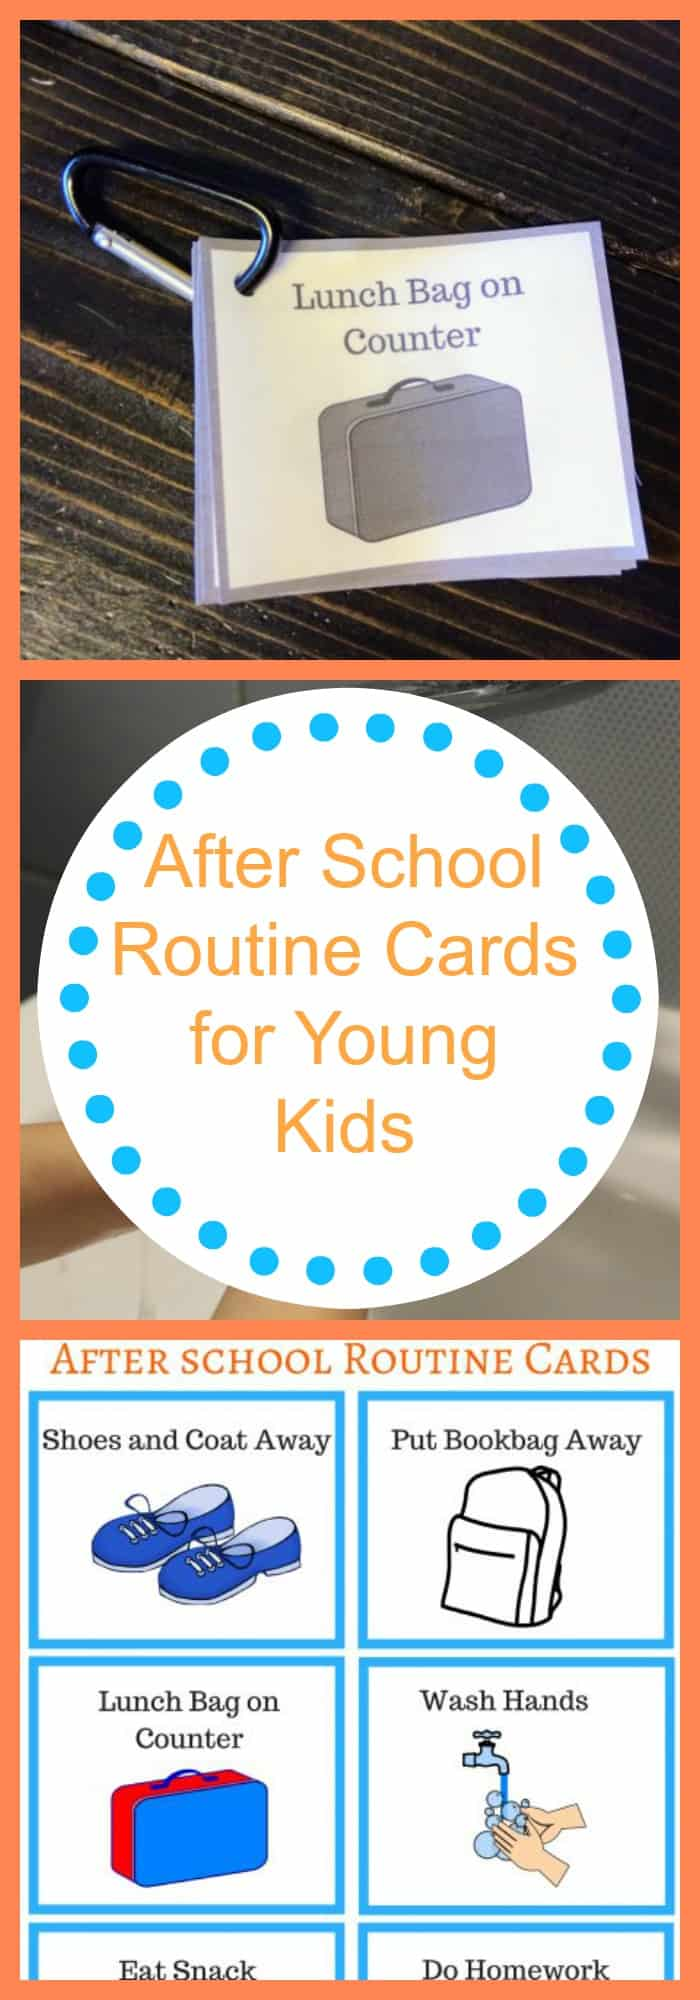 Parenting--After School Routine Cards for Young Kids--The Organized Mom